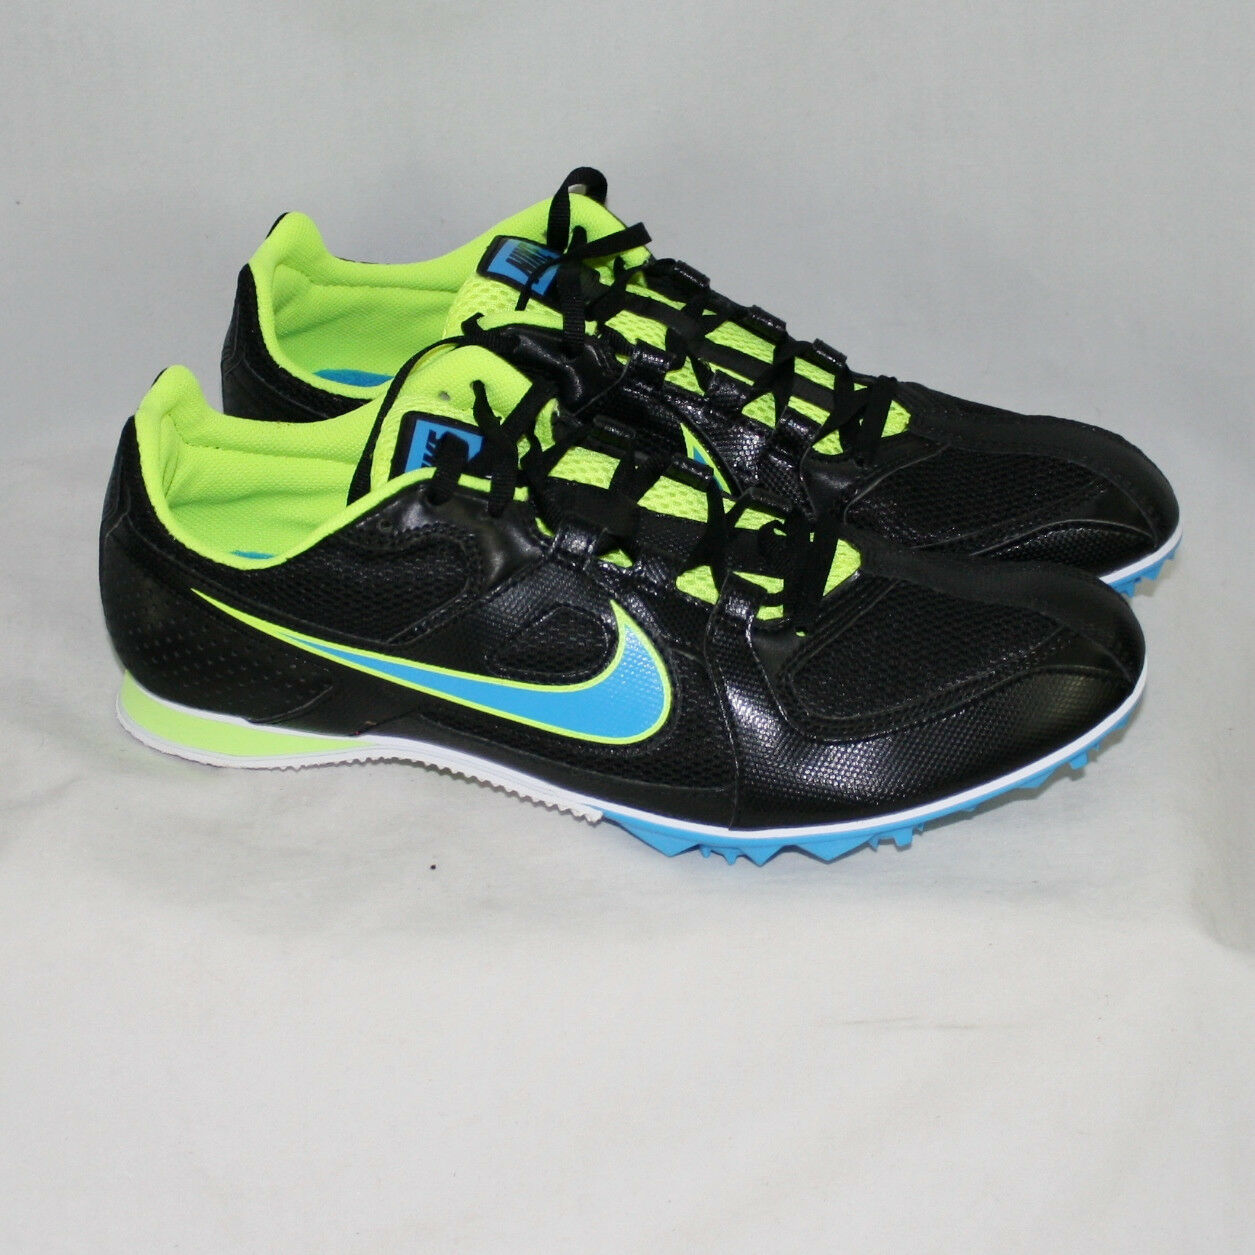 Nike Mens Zoom Rival MD 6 Multi-UseTrack Sprint Shoes Spikes 468648-041